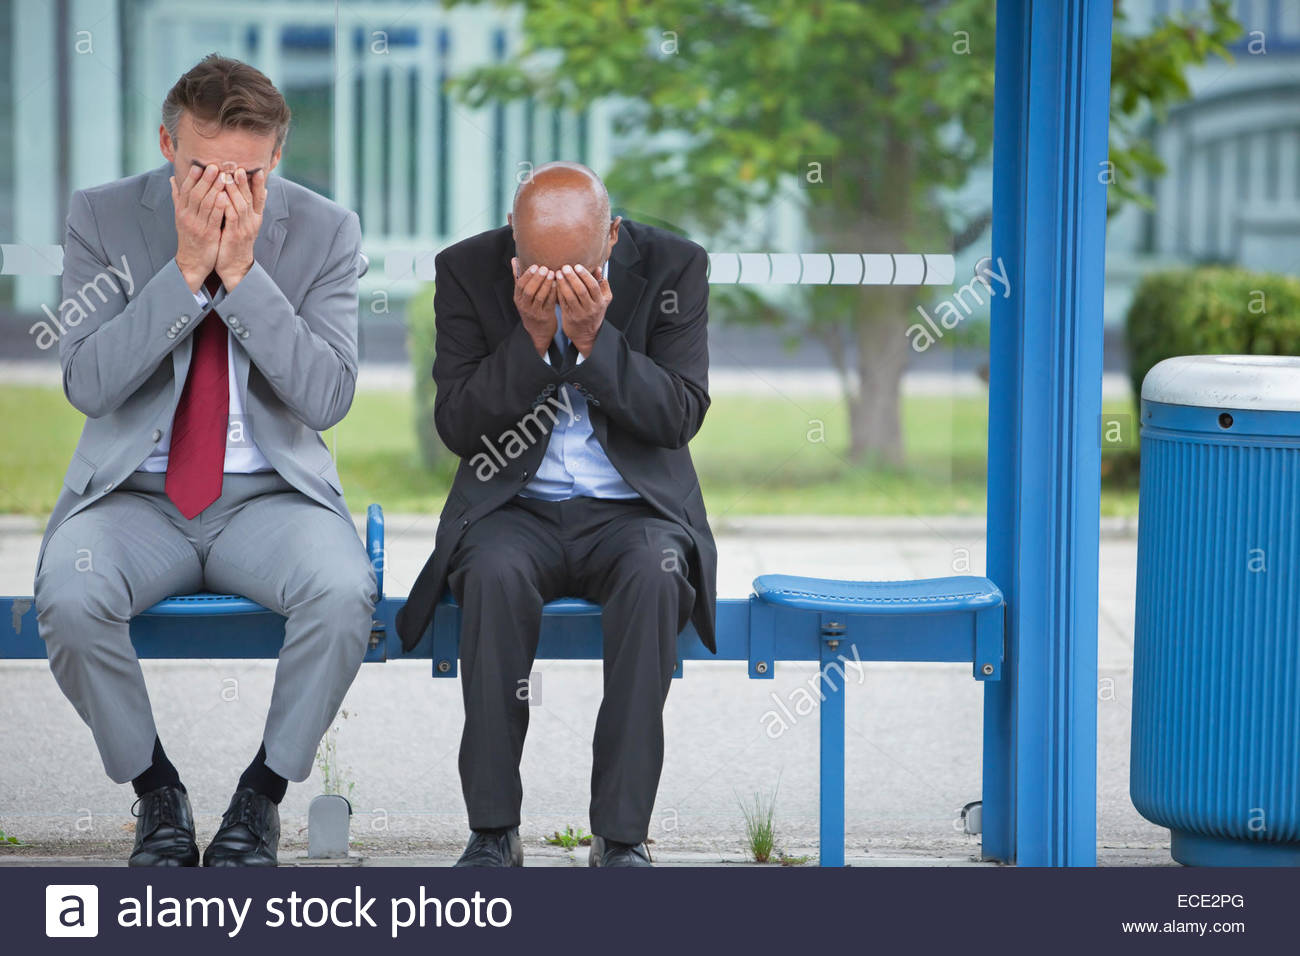 Men slump termination failure fear fired frustrated jobless - Stock Image